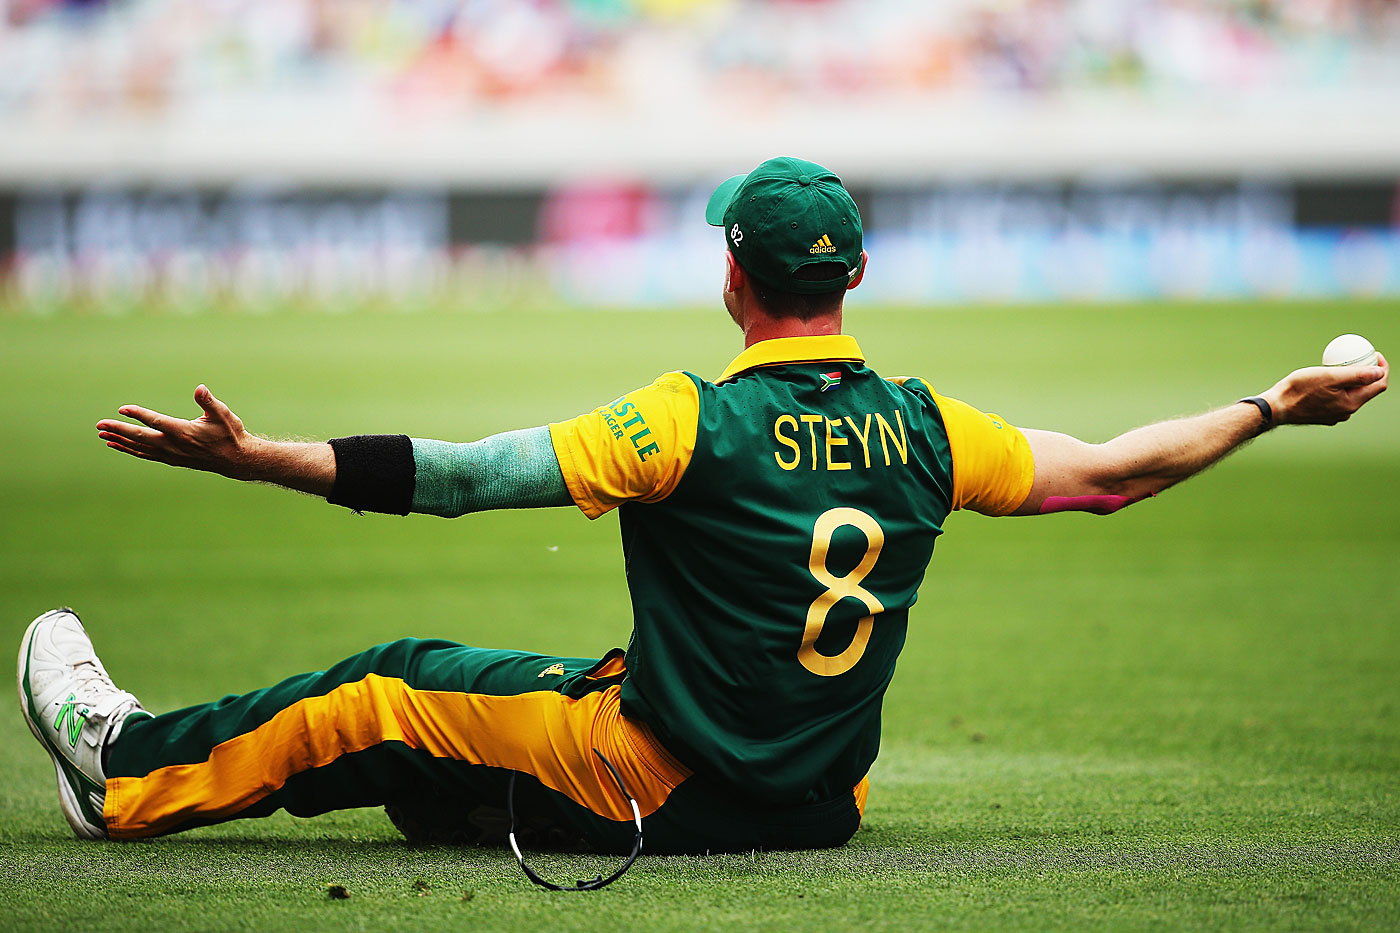 Dale Steyn played himself in <i>Blended</i>, with Adam Sandler